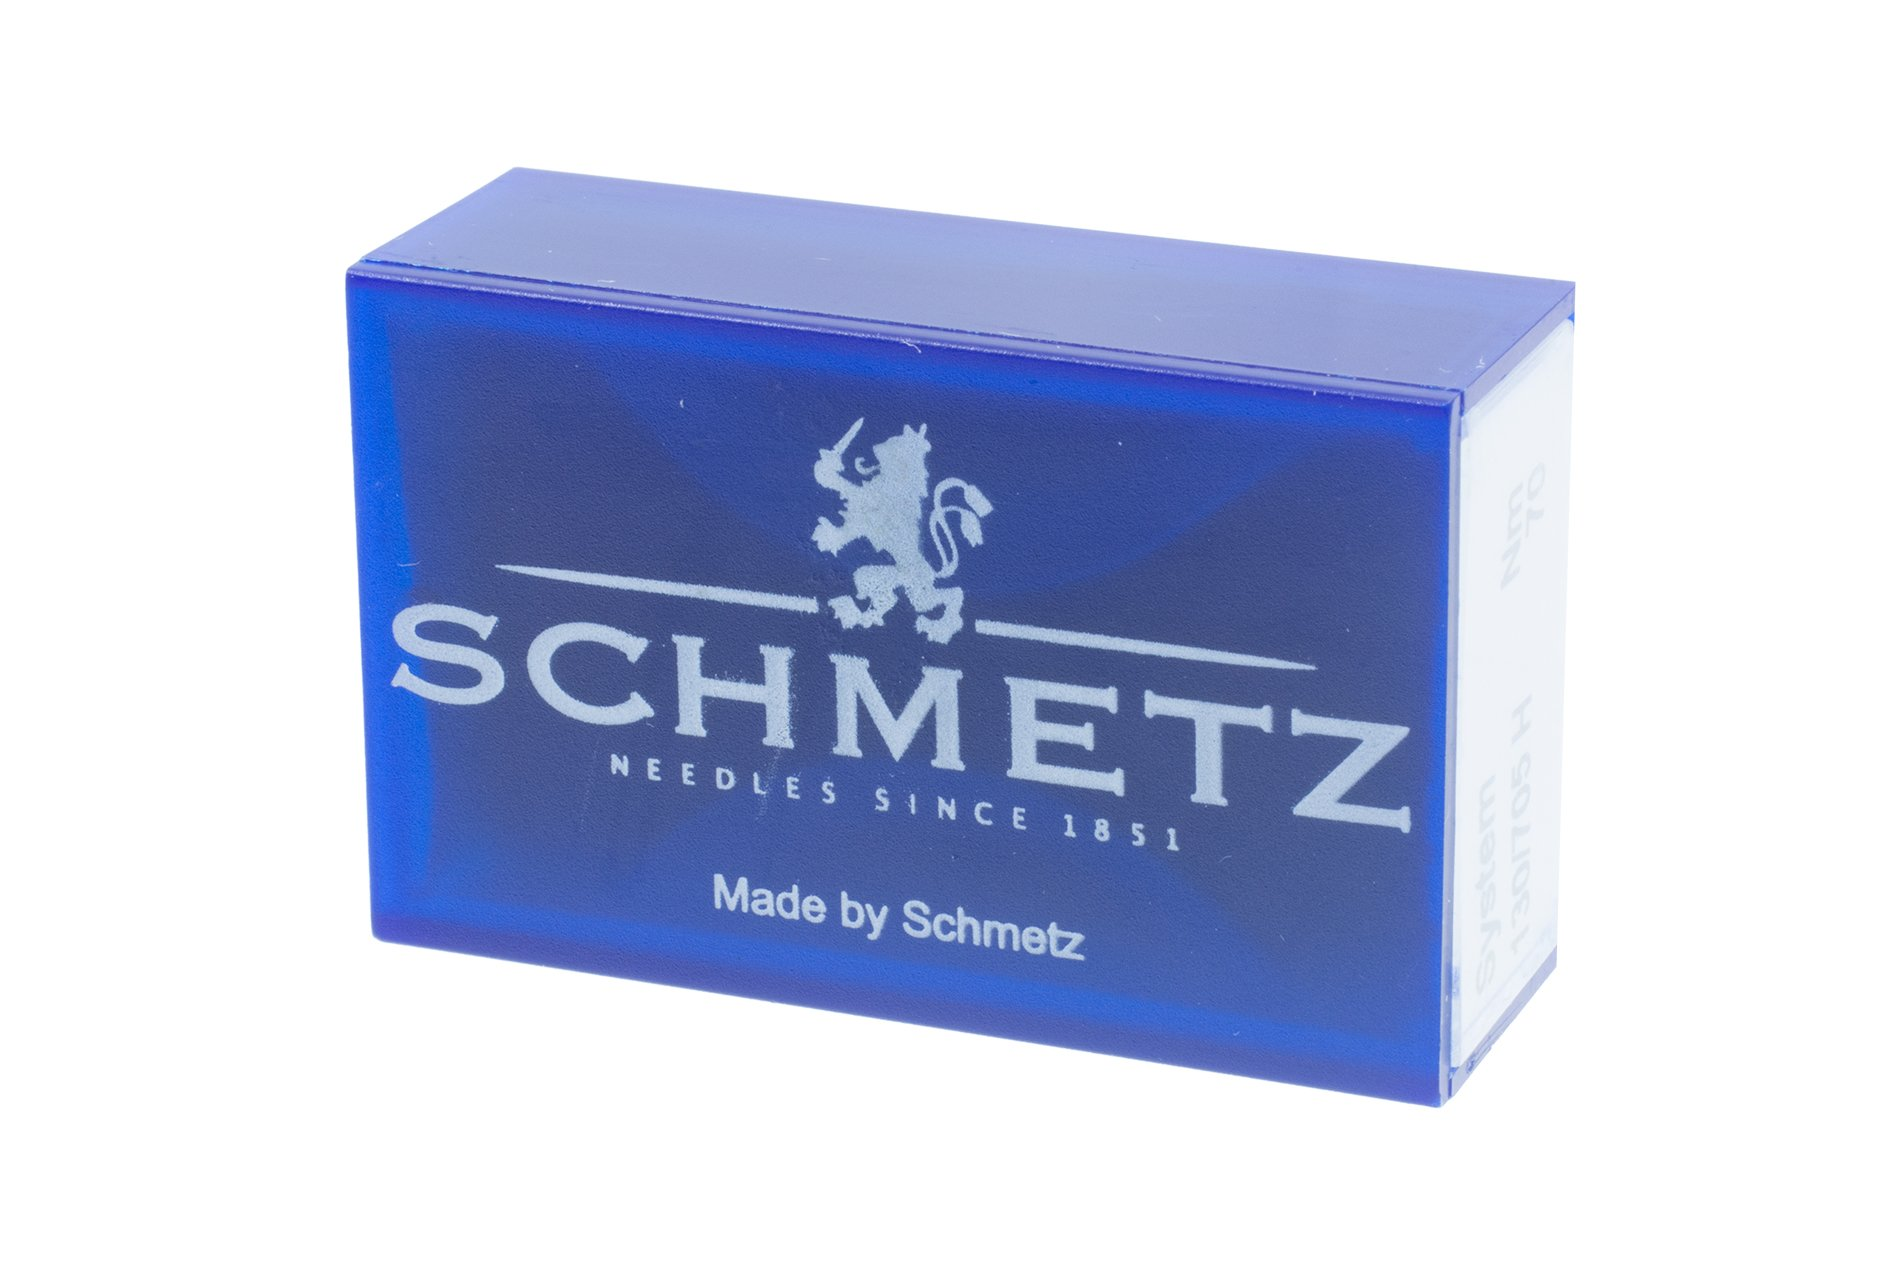 SCHMETZ Embroidery (130/705 H-E) Sewing Machine Needles - Bulk - Size 75/11 by Schmetz